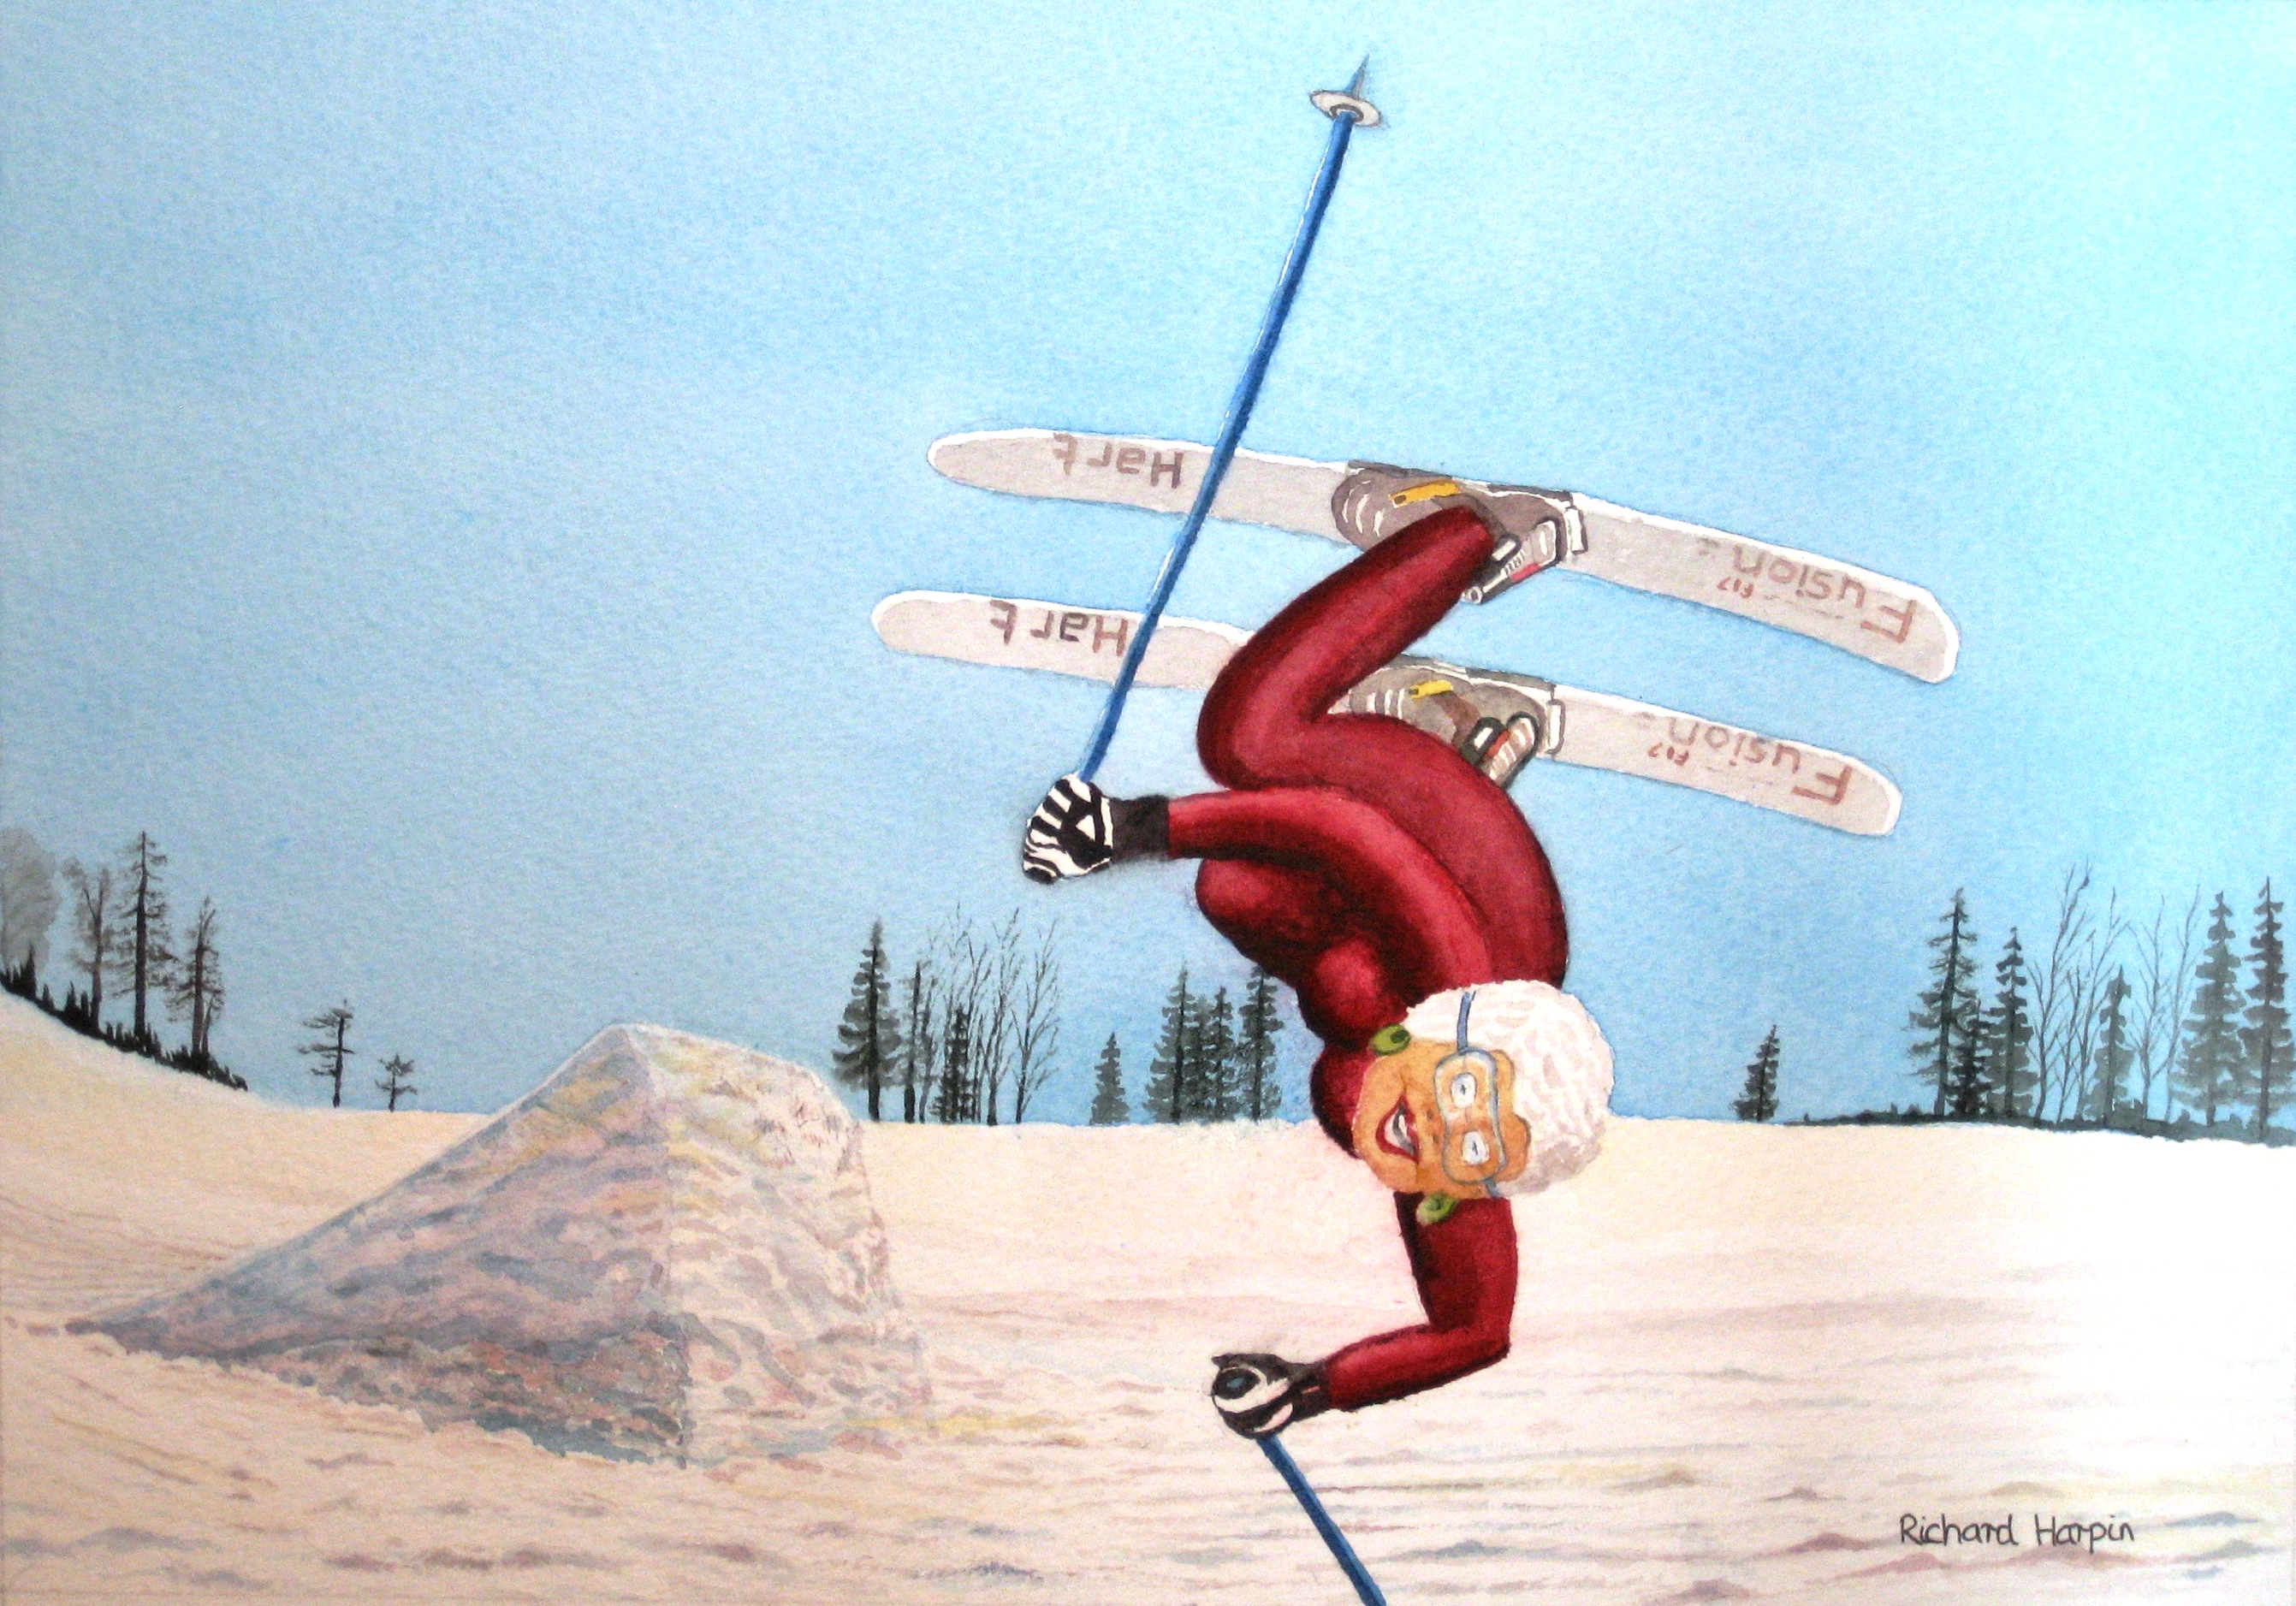 Ethel found she could still ski!